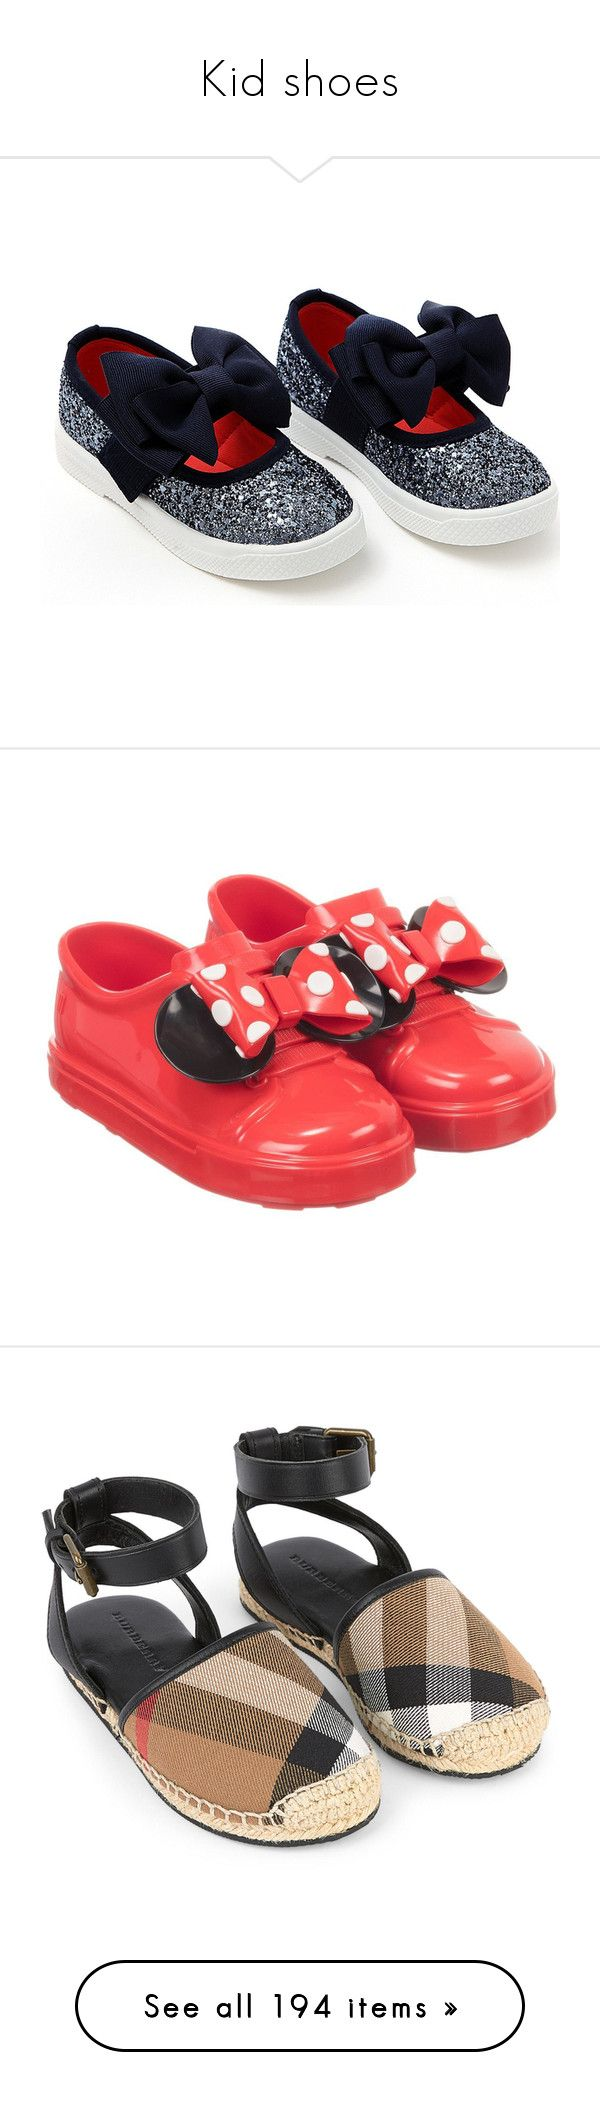 """Kid shoes"" by lulugurl98 ❤ liked on Polyvore featuring kids shoes, red, navy, shoes, sneakers, jordans, baby clothes, nike, boots and sapatos"